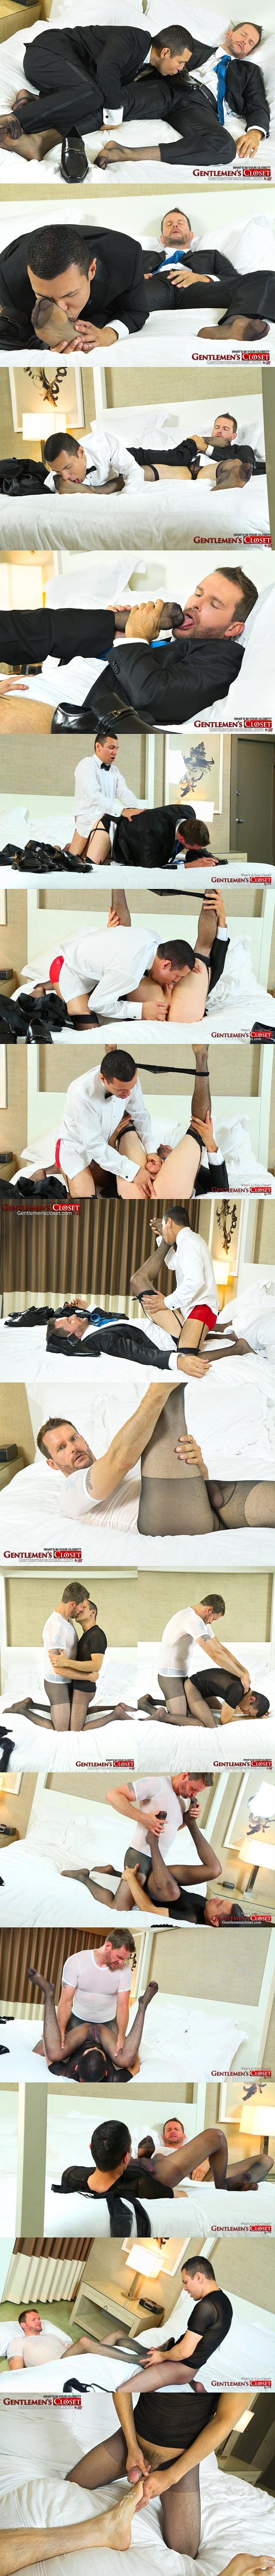 Gentlemenscloset - Carson and Fernando Reve 02